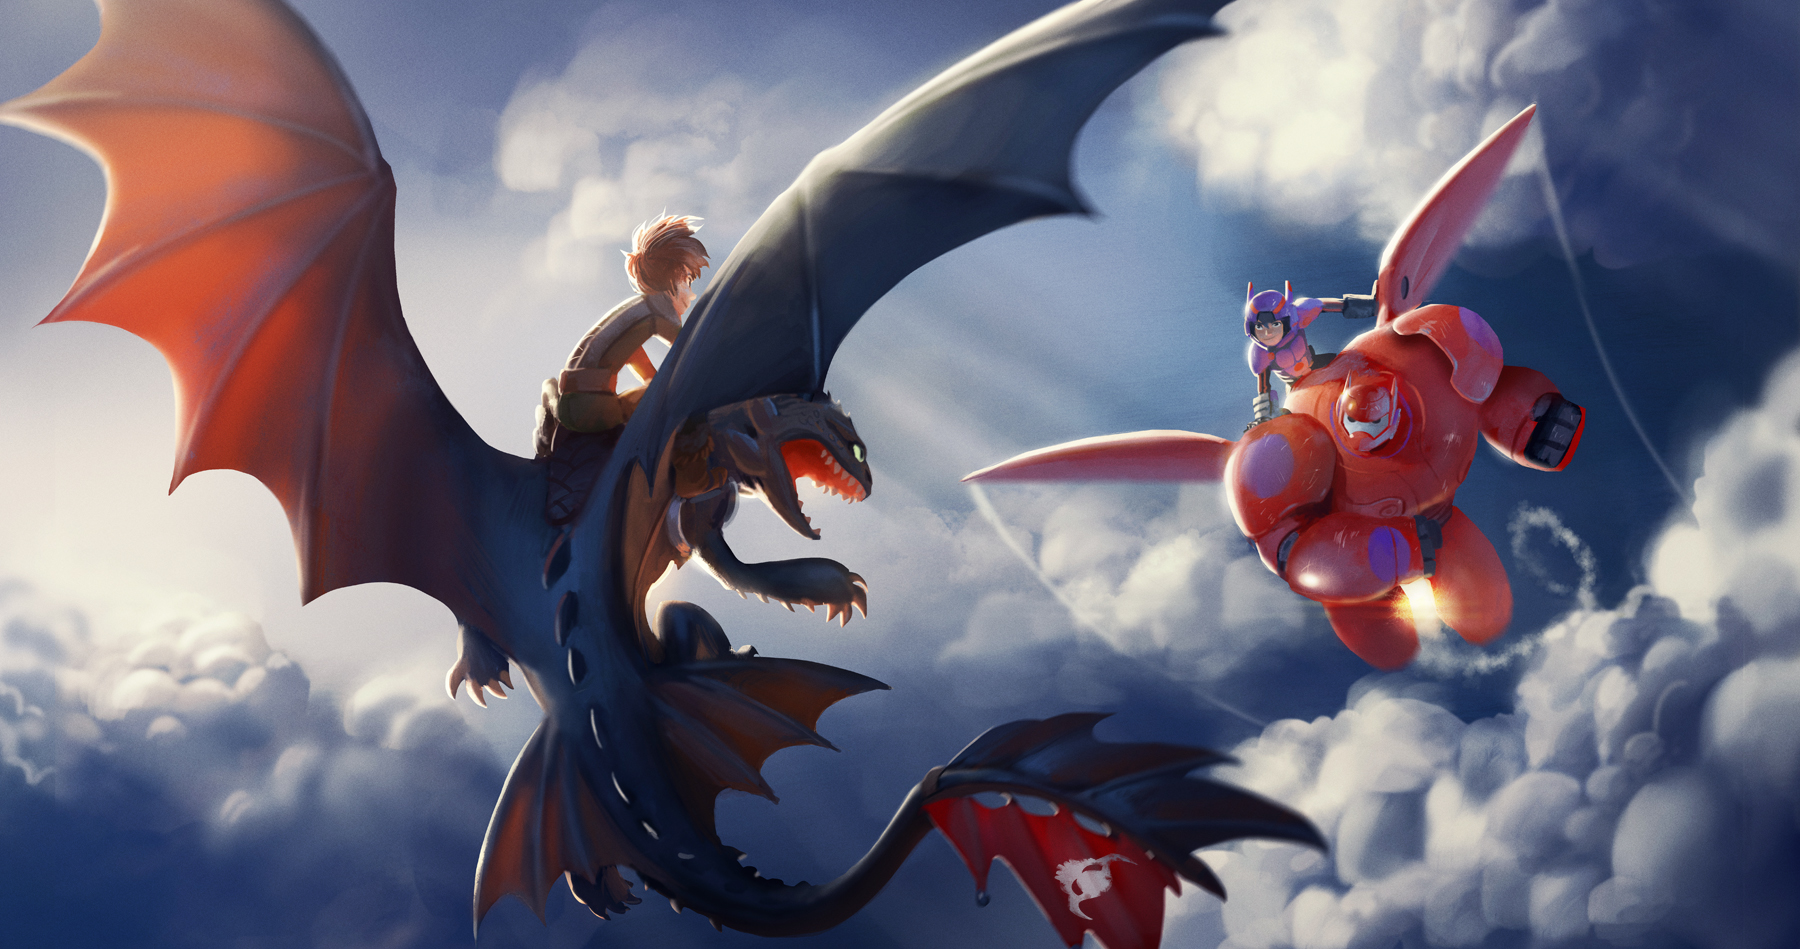 Hiccup and Toothless VS. Hiro and Baymax